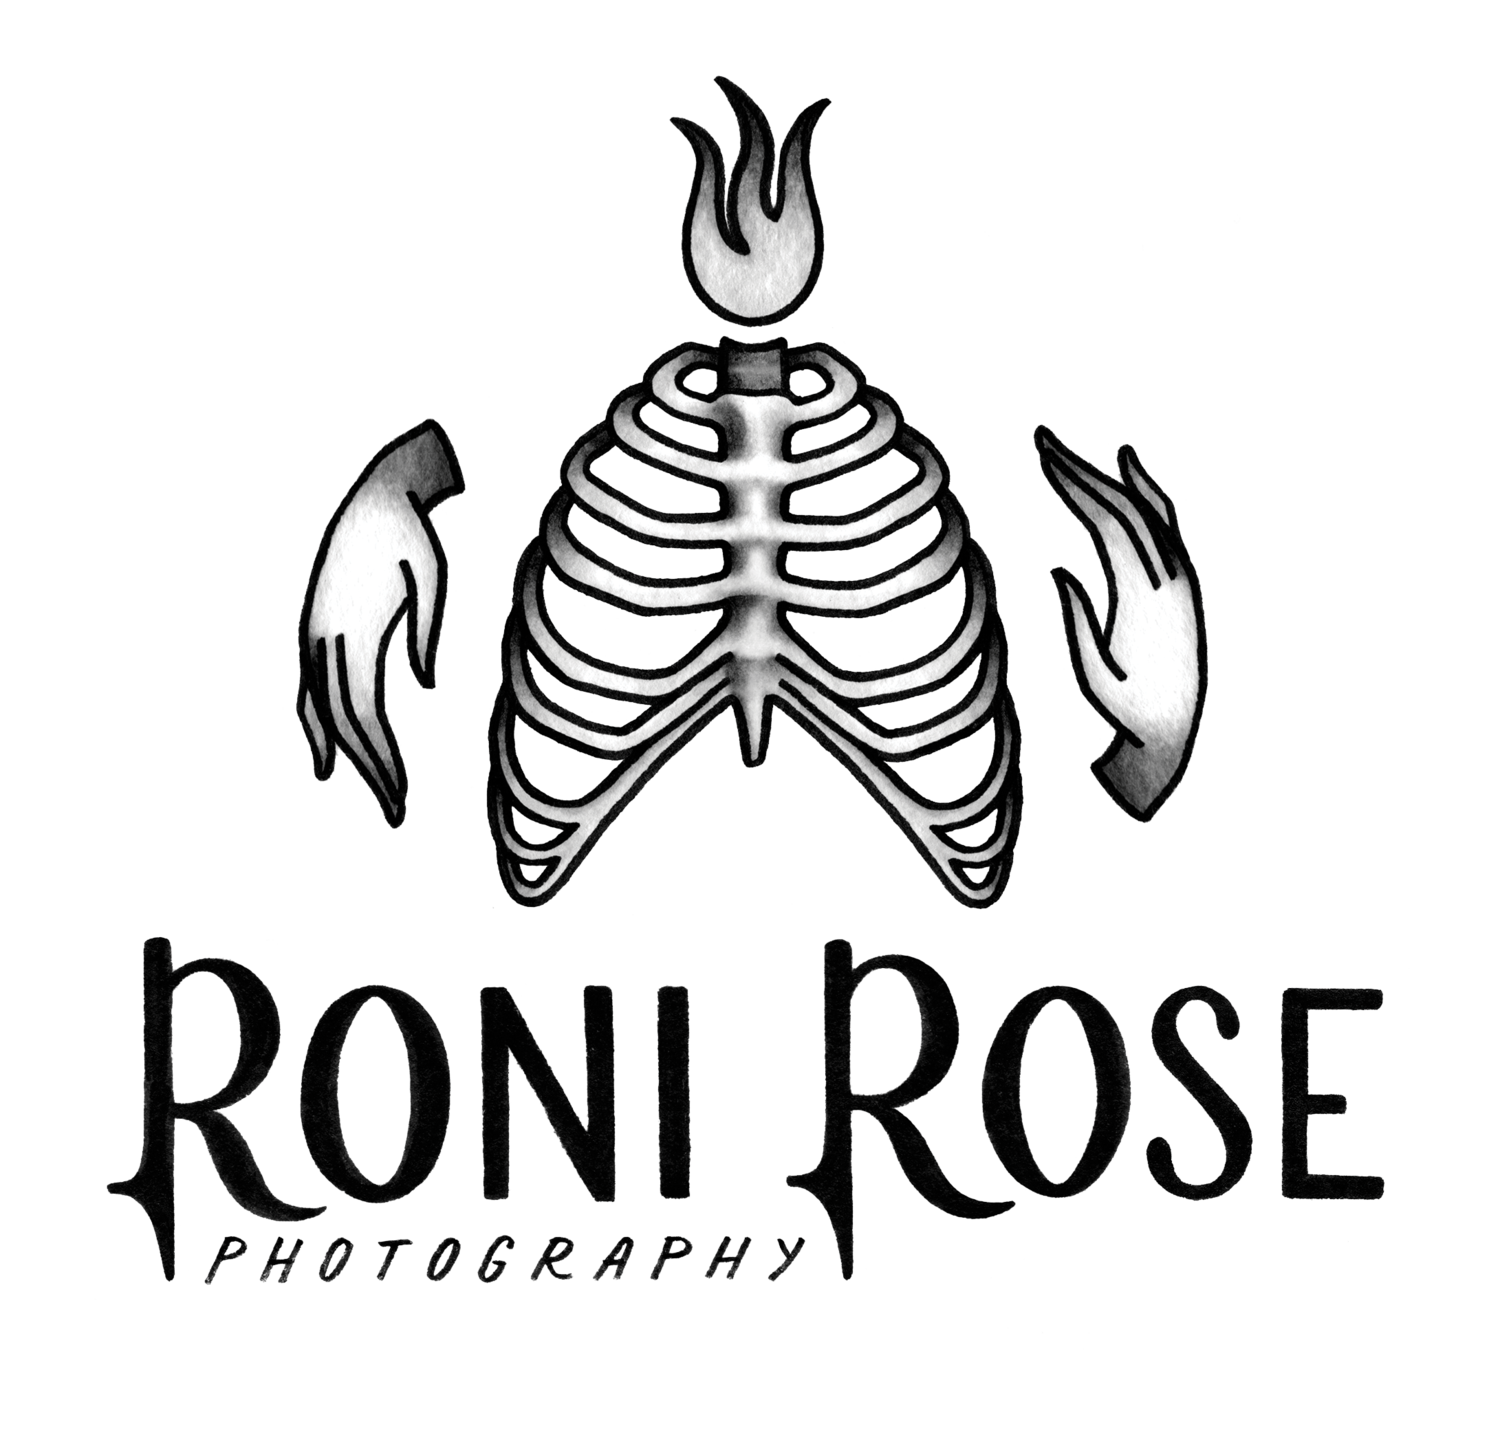 roni rose photography